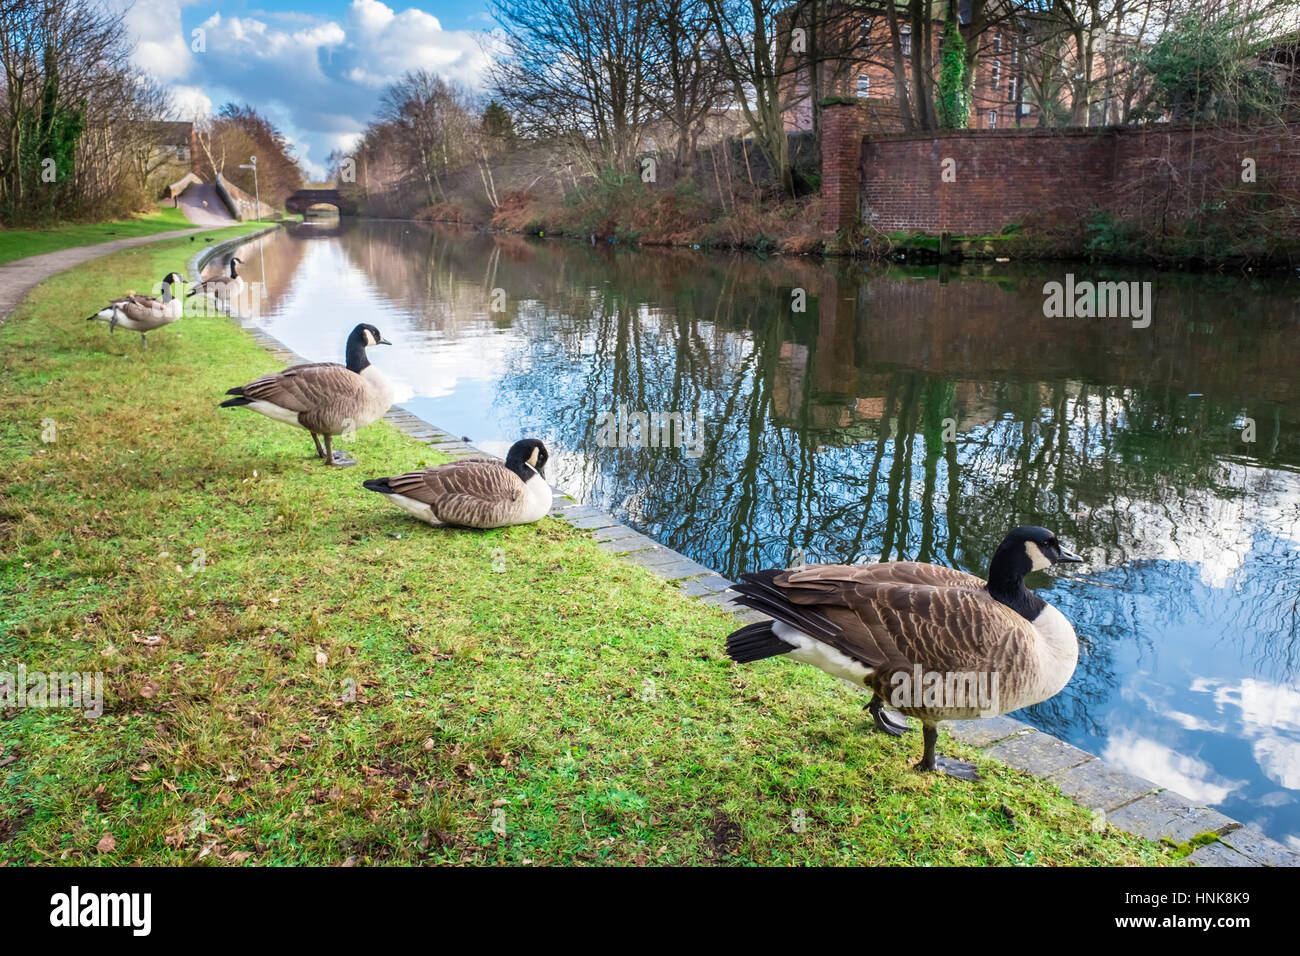 Wild Ducks at Birmingham Canal - Stock Image